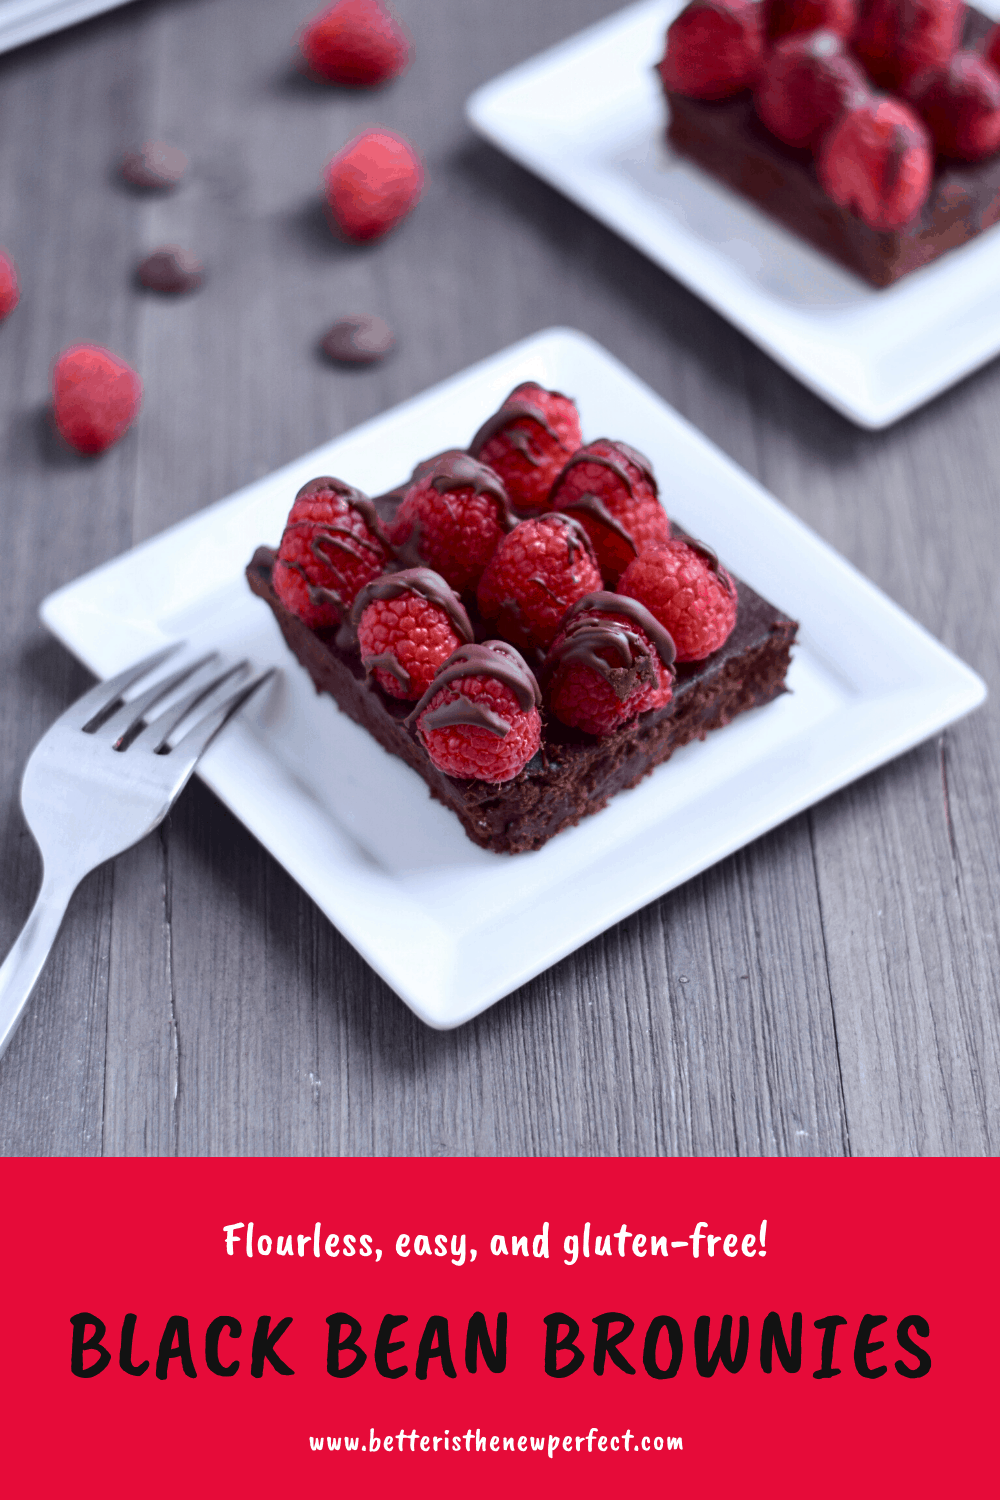 Two black bean brownies topped with fresh raspberries on white plates on a gray background.